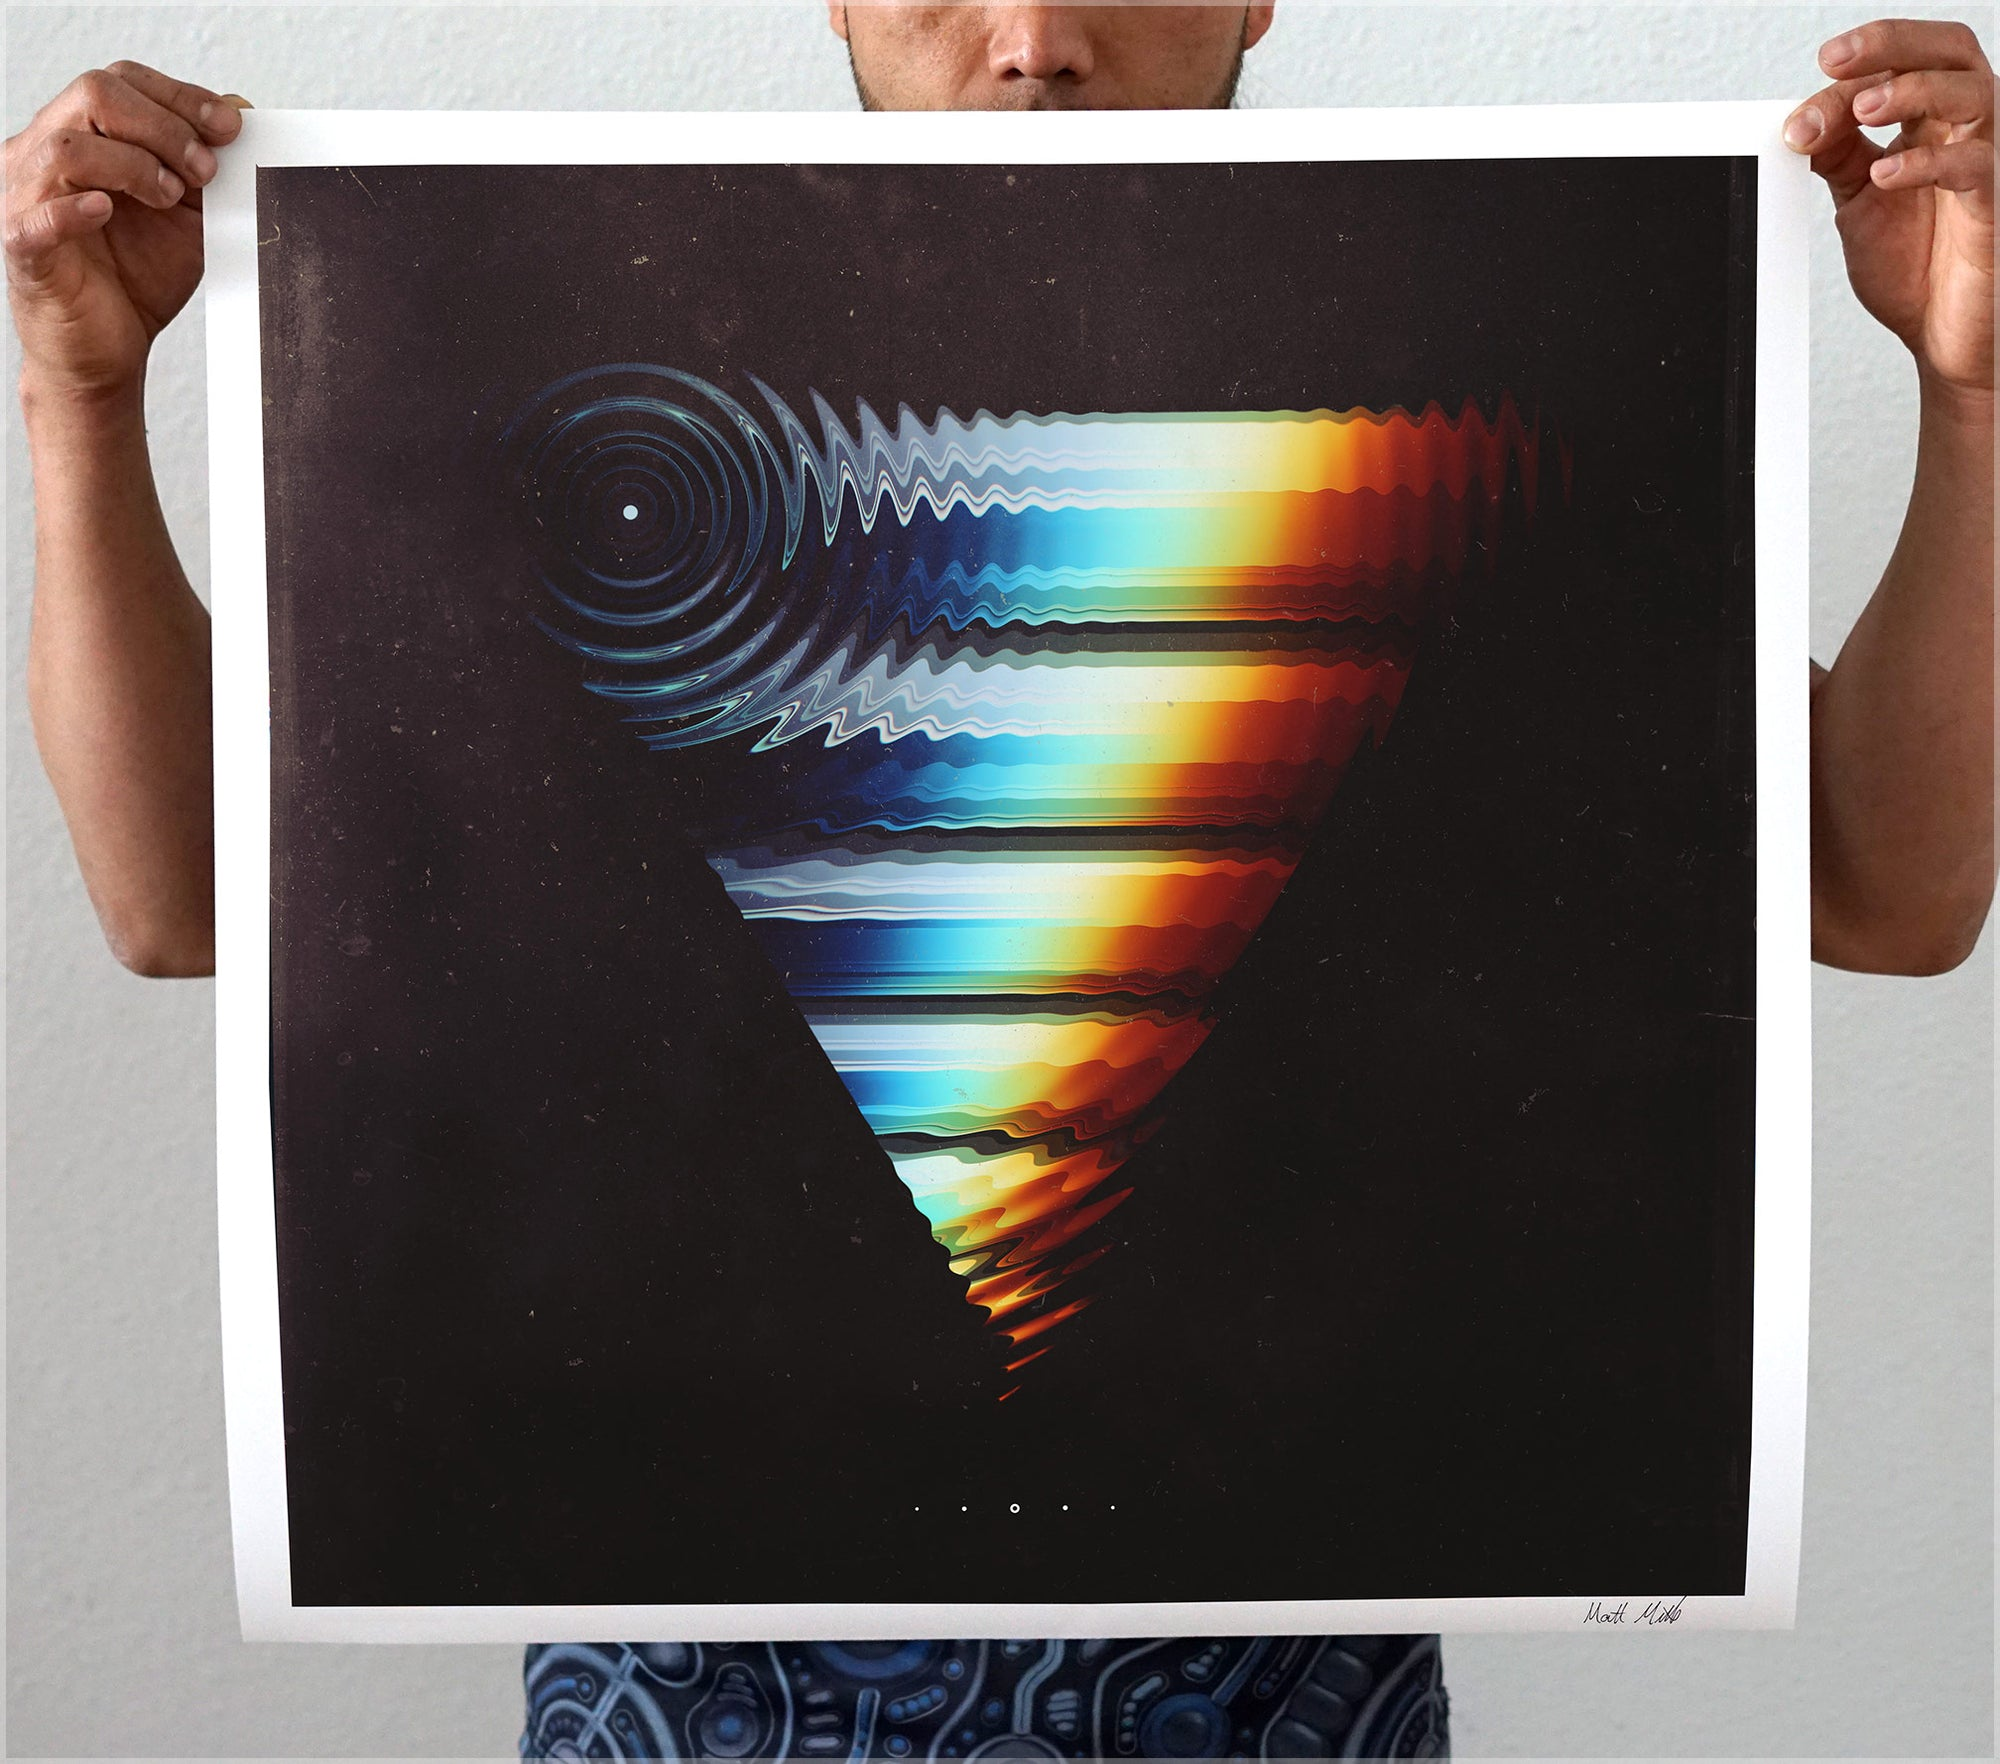 Recoiled Signed Print by Matt Mills - 24 x 24 in.